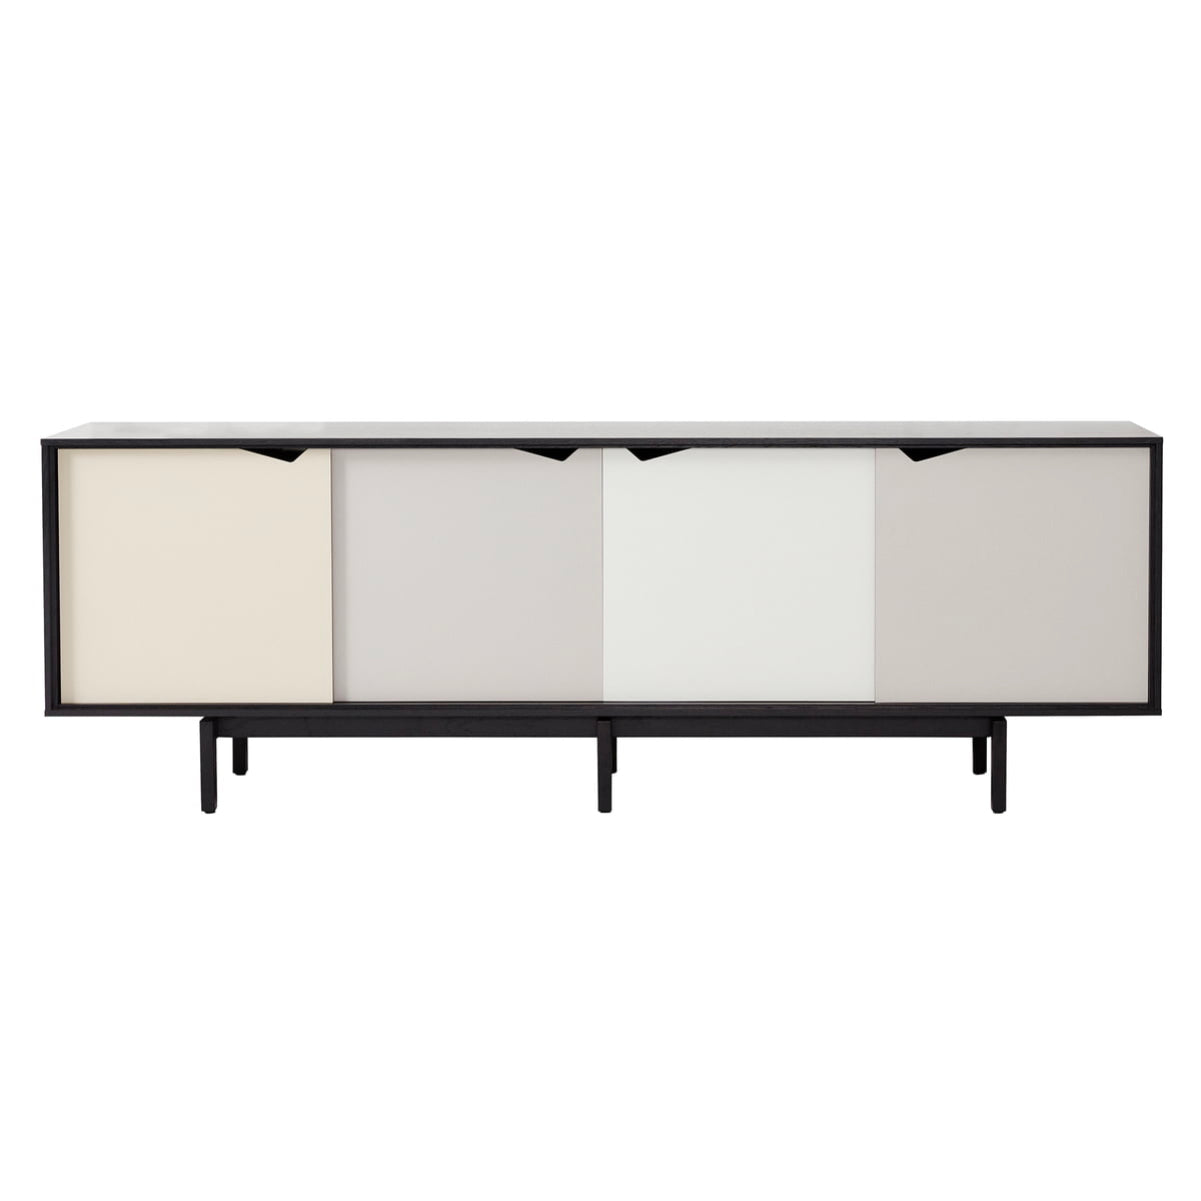 Andersen S1 sideboard, black lacquered oak